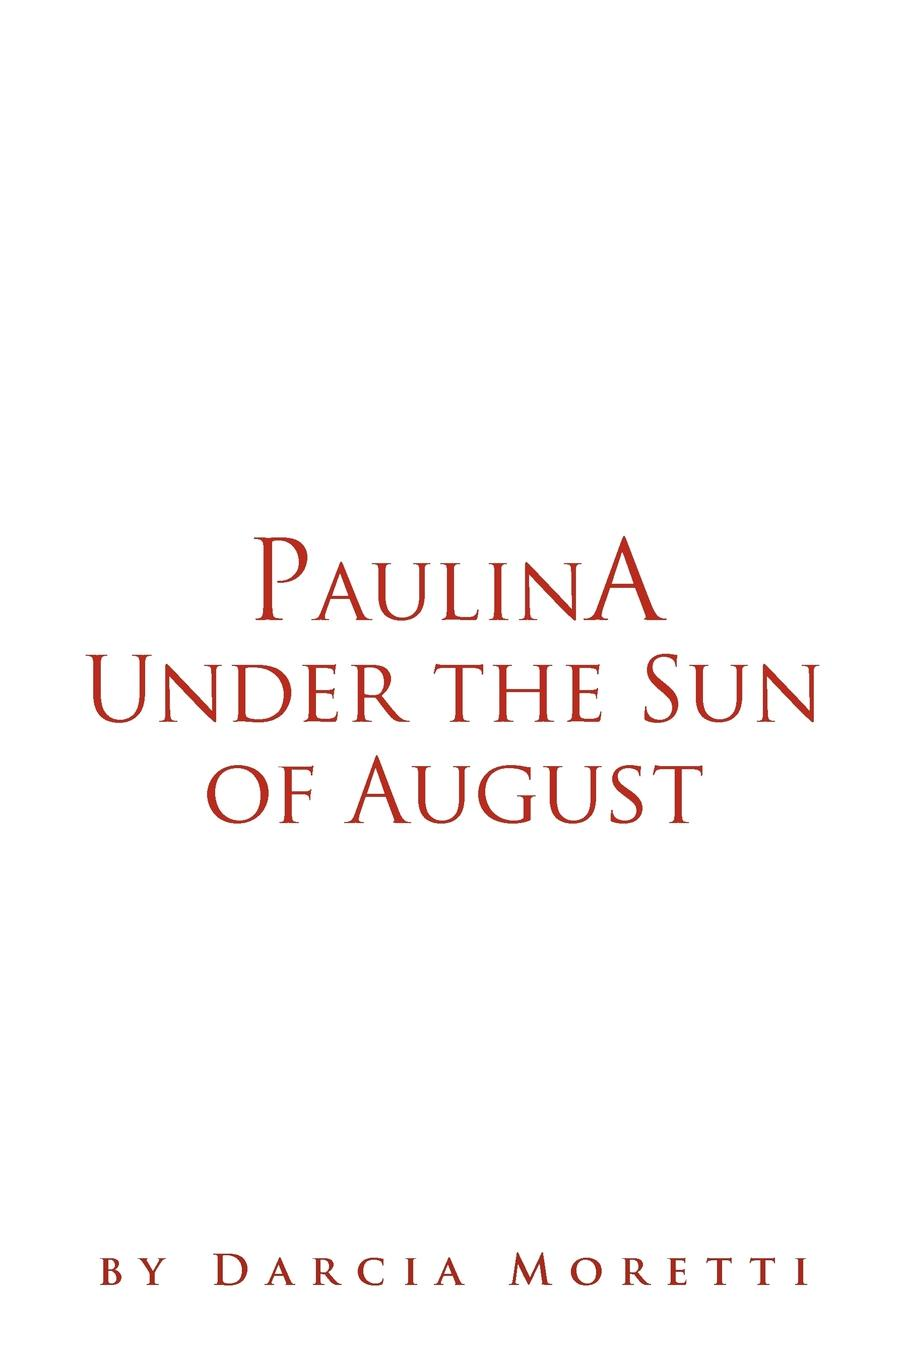 Darcia Moretti Paulina Under the Sun of August secrets under the sun